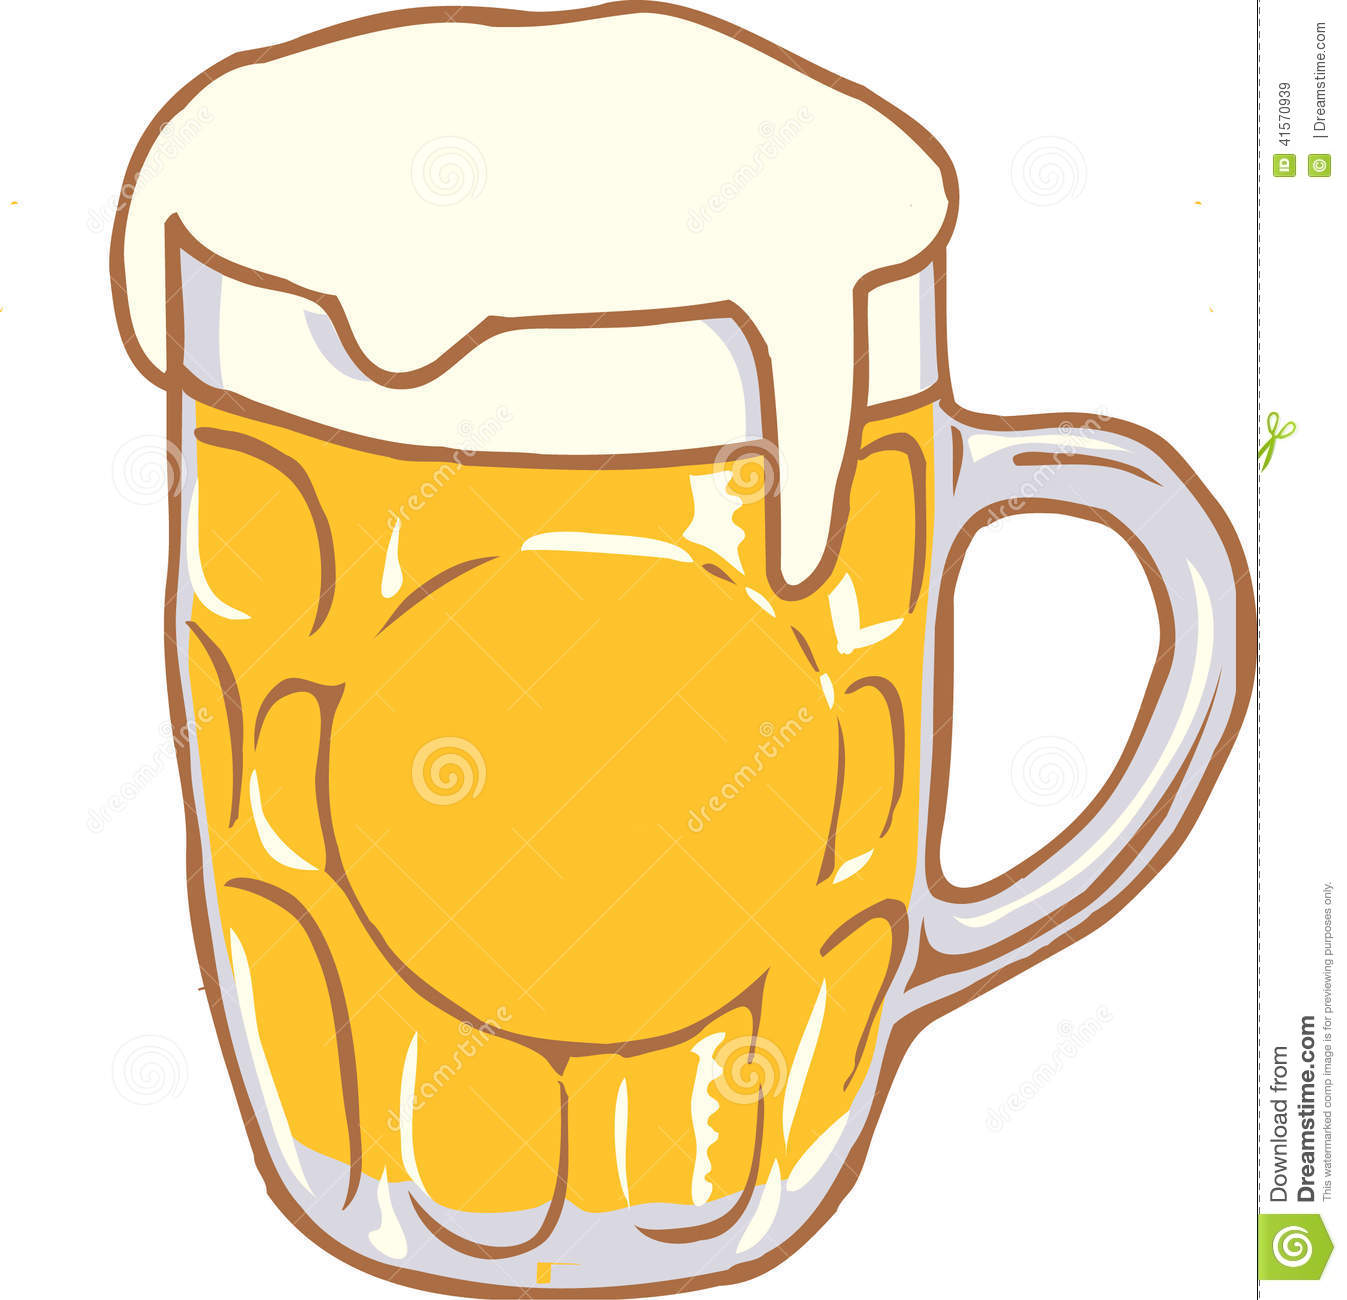 Beer Clipart Royalty Free Stock Photos.